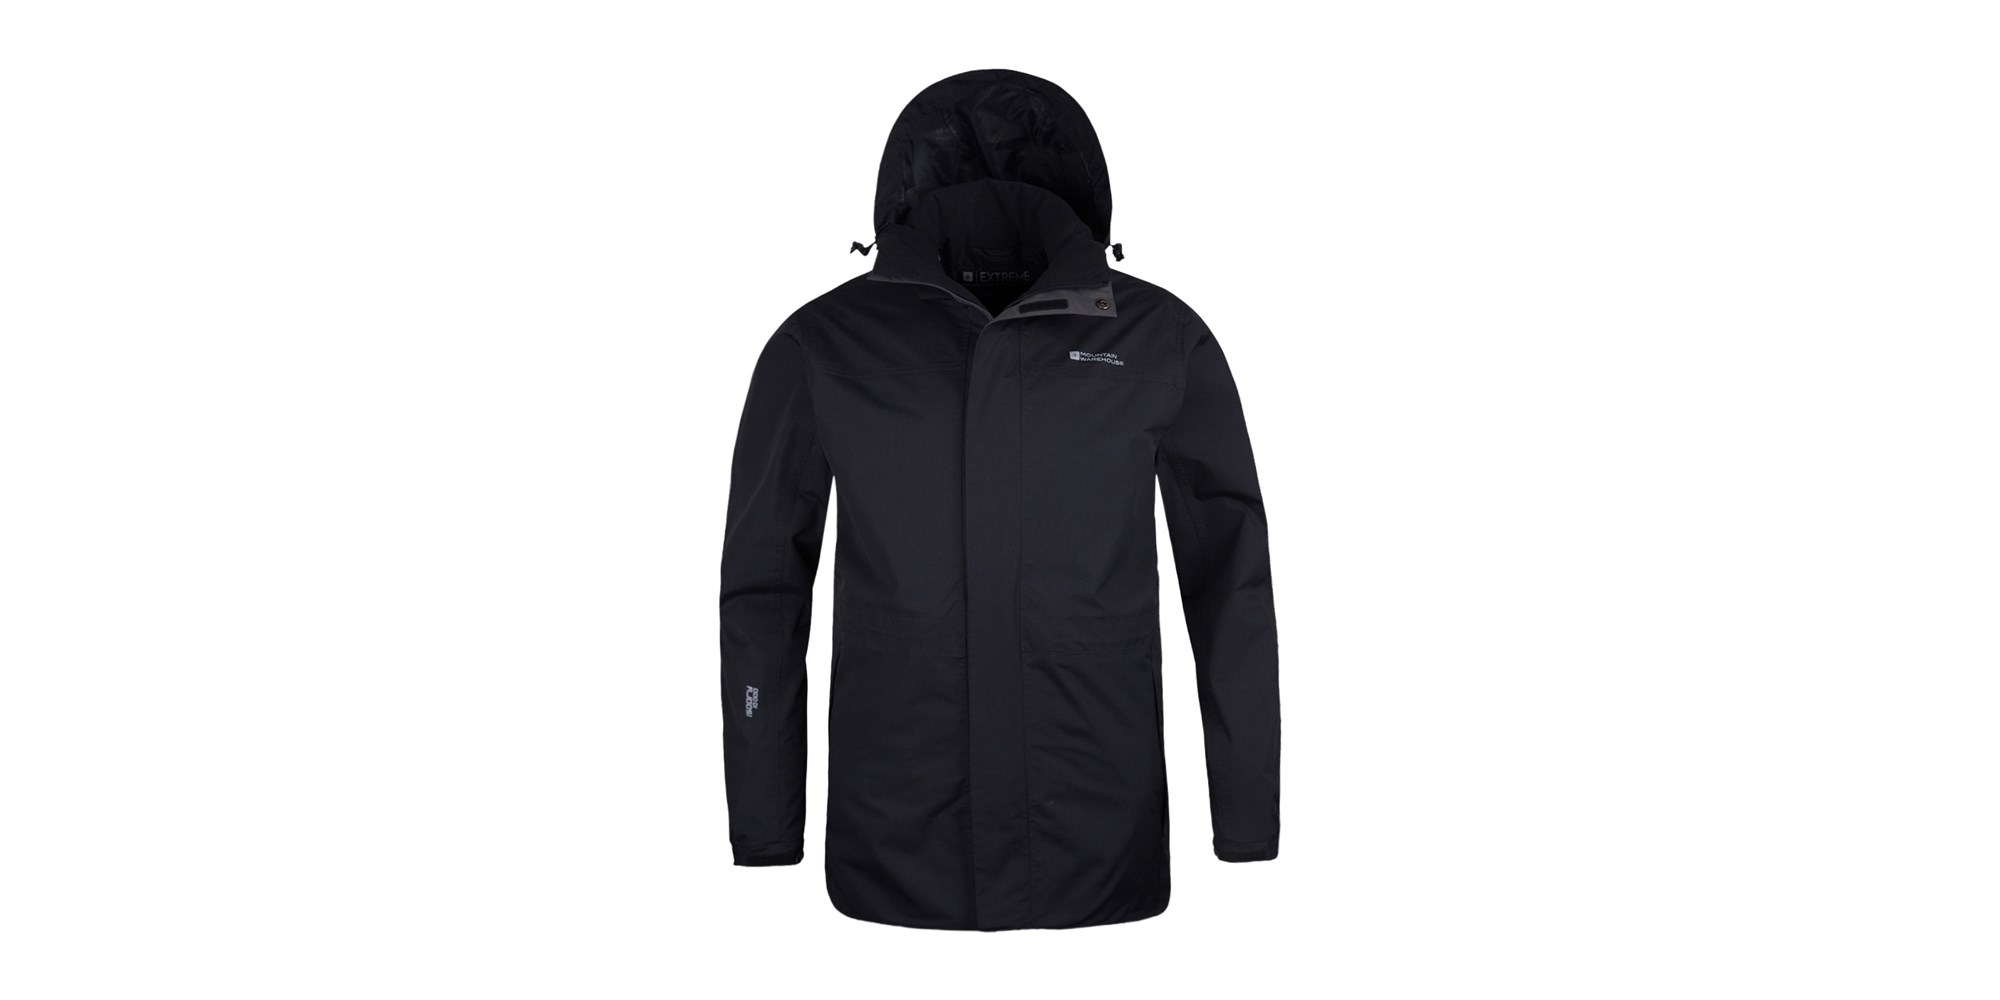 Mountain Warehouse Glacier Extreme Mens Long Waterproof Jacket | eBay